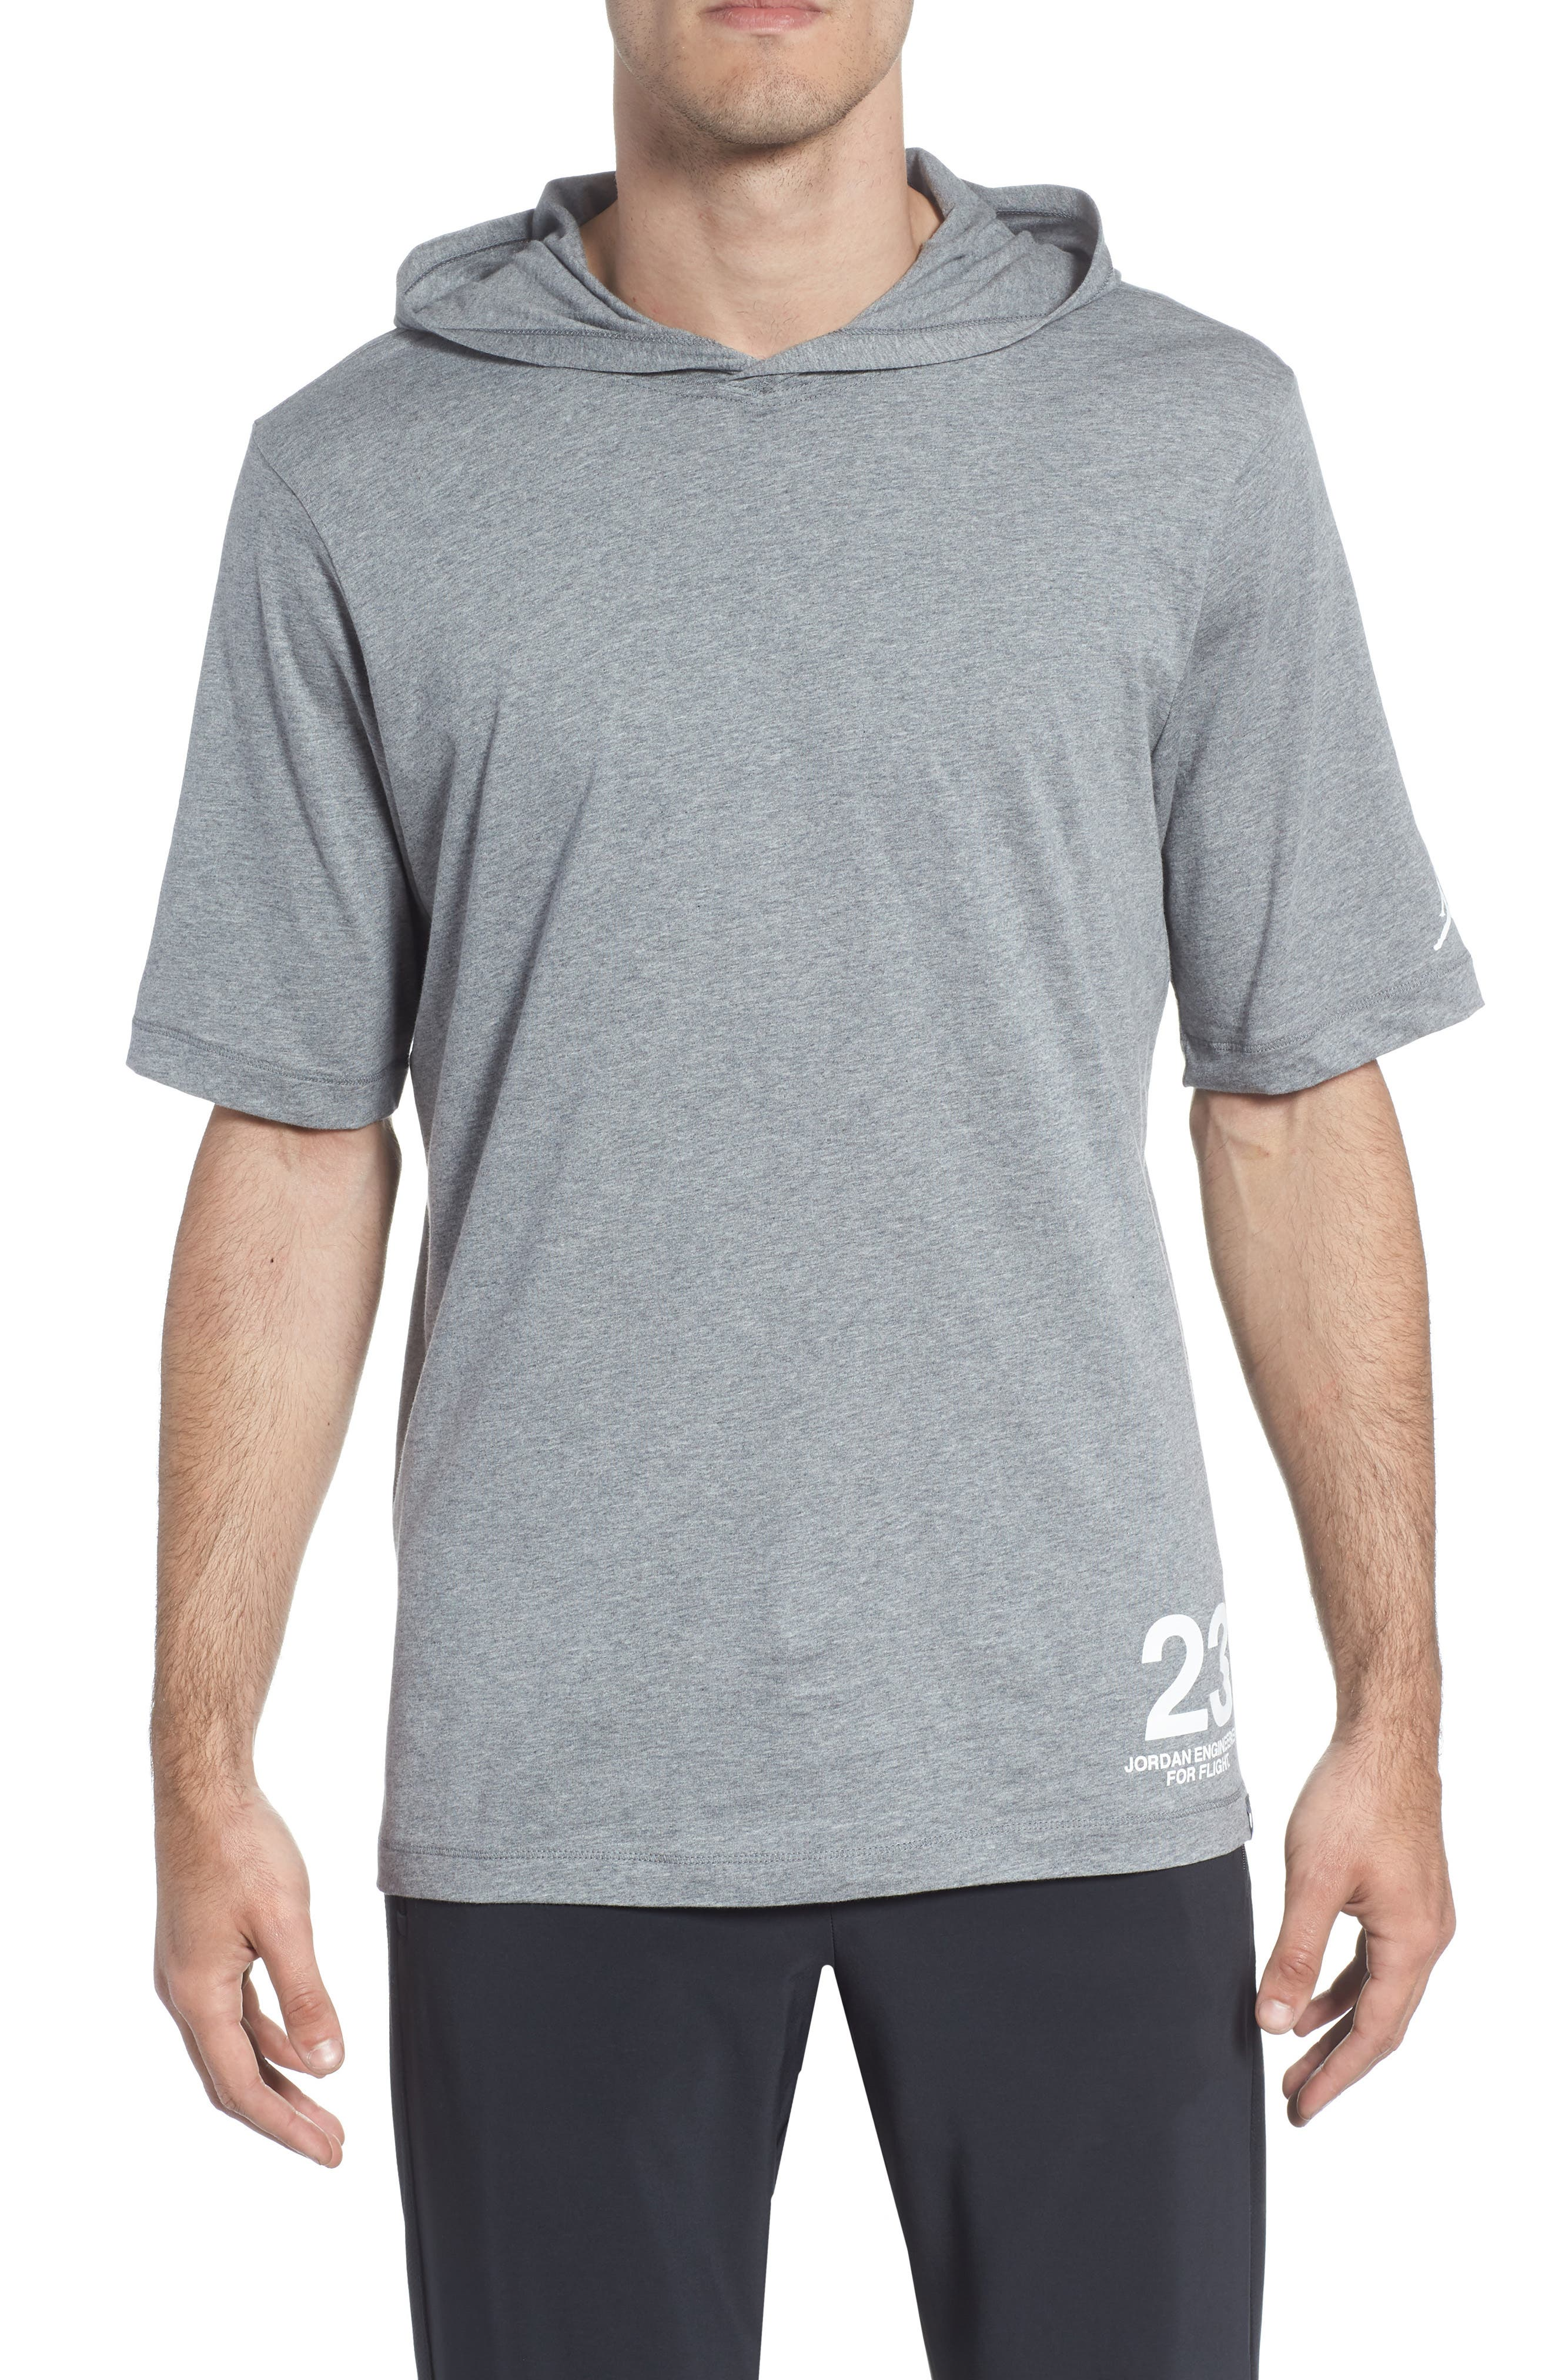 Sportswear 23 Hooded T-Shirt,                             Main thumbnail 1, color,                             CARBON HEATHER/ WHITE